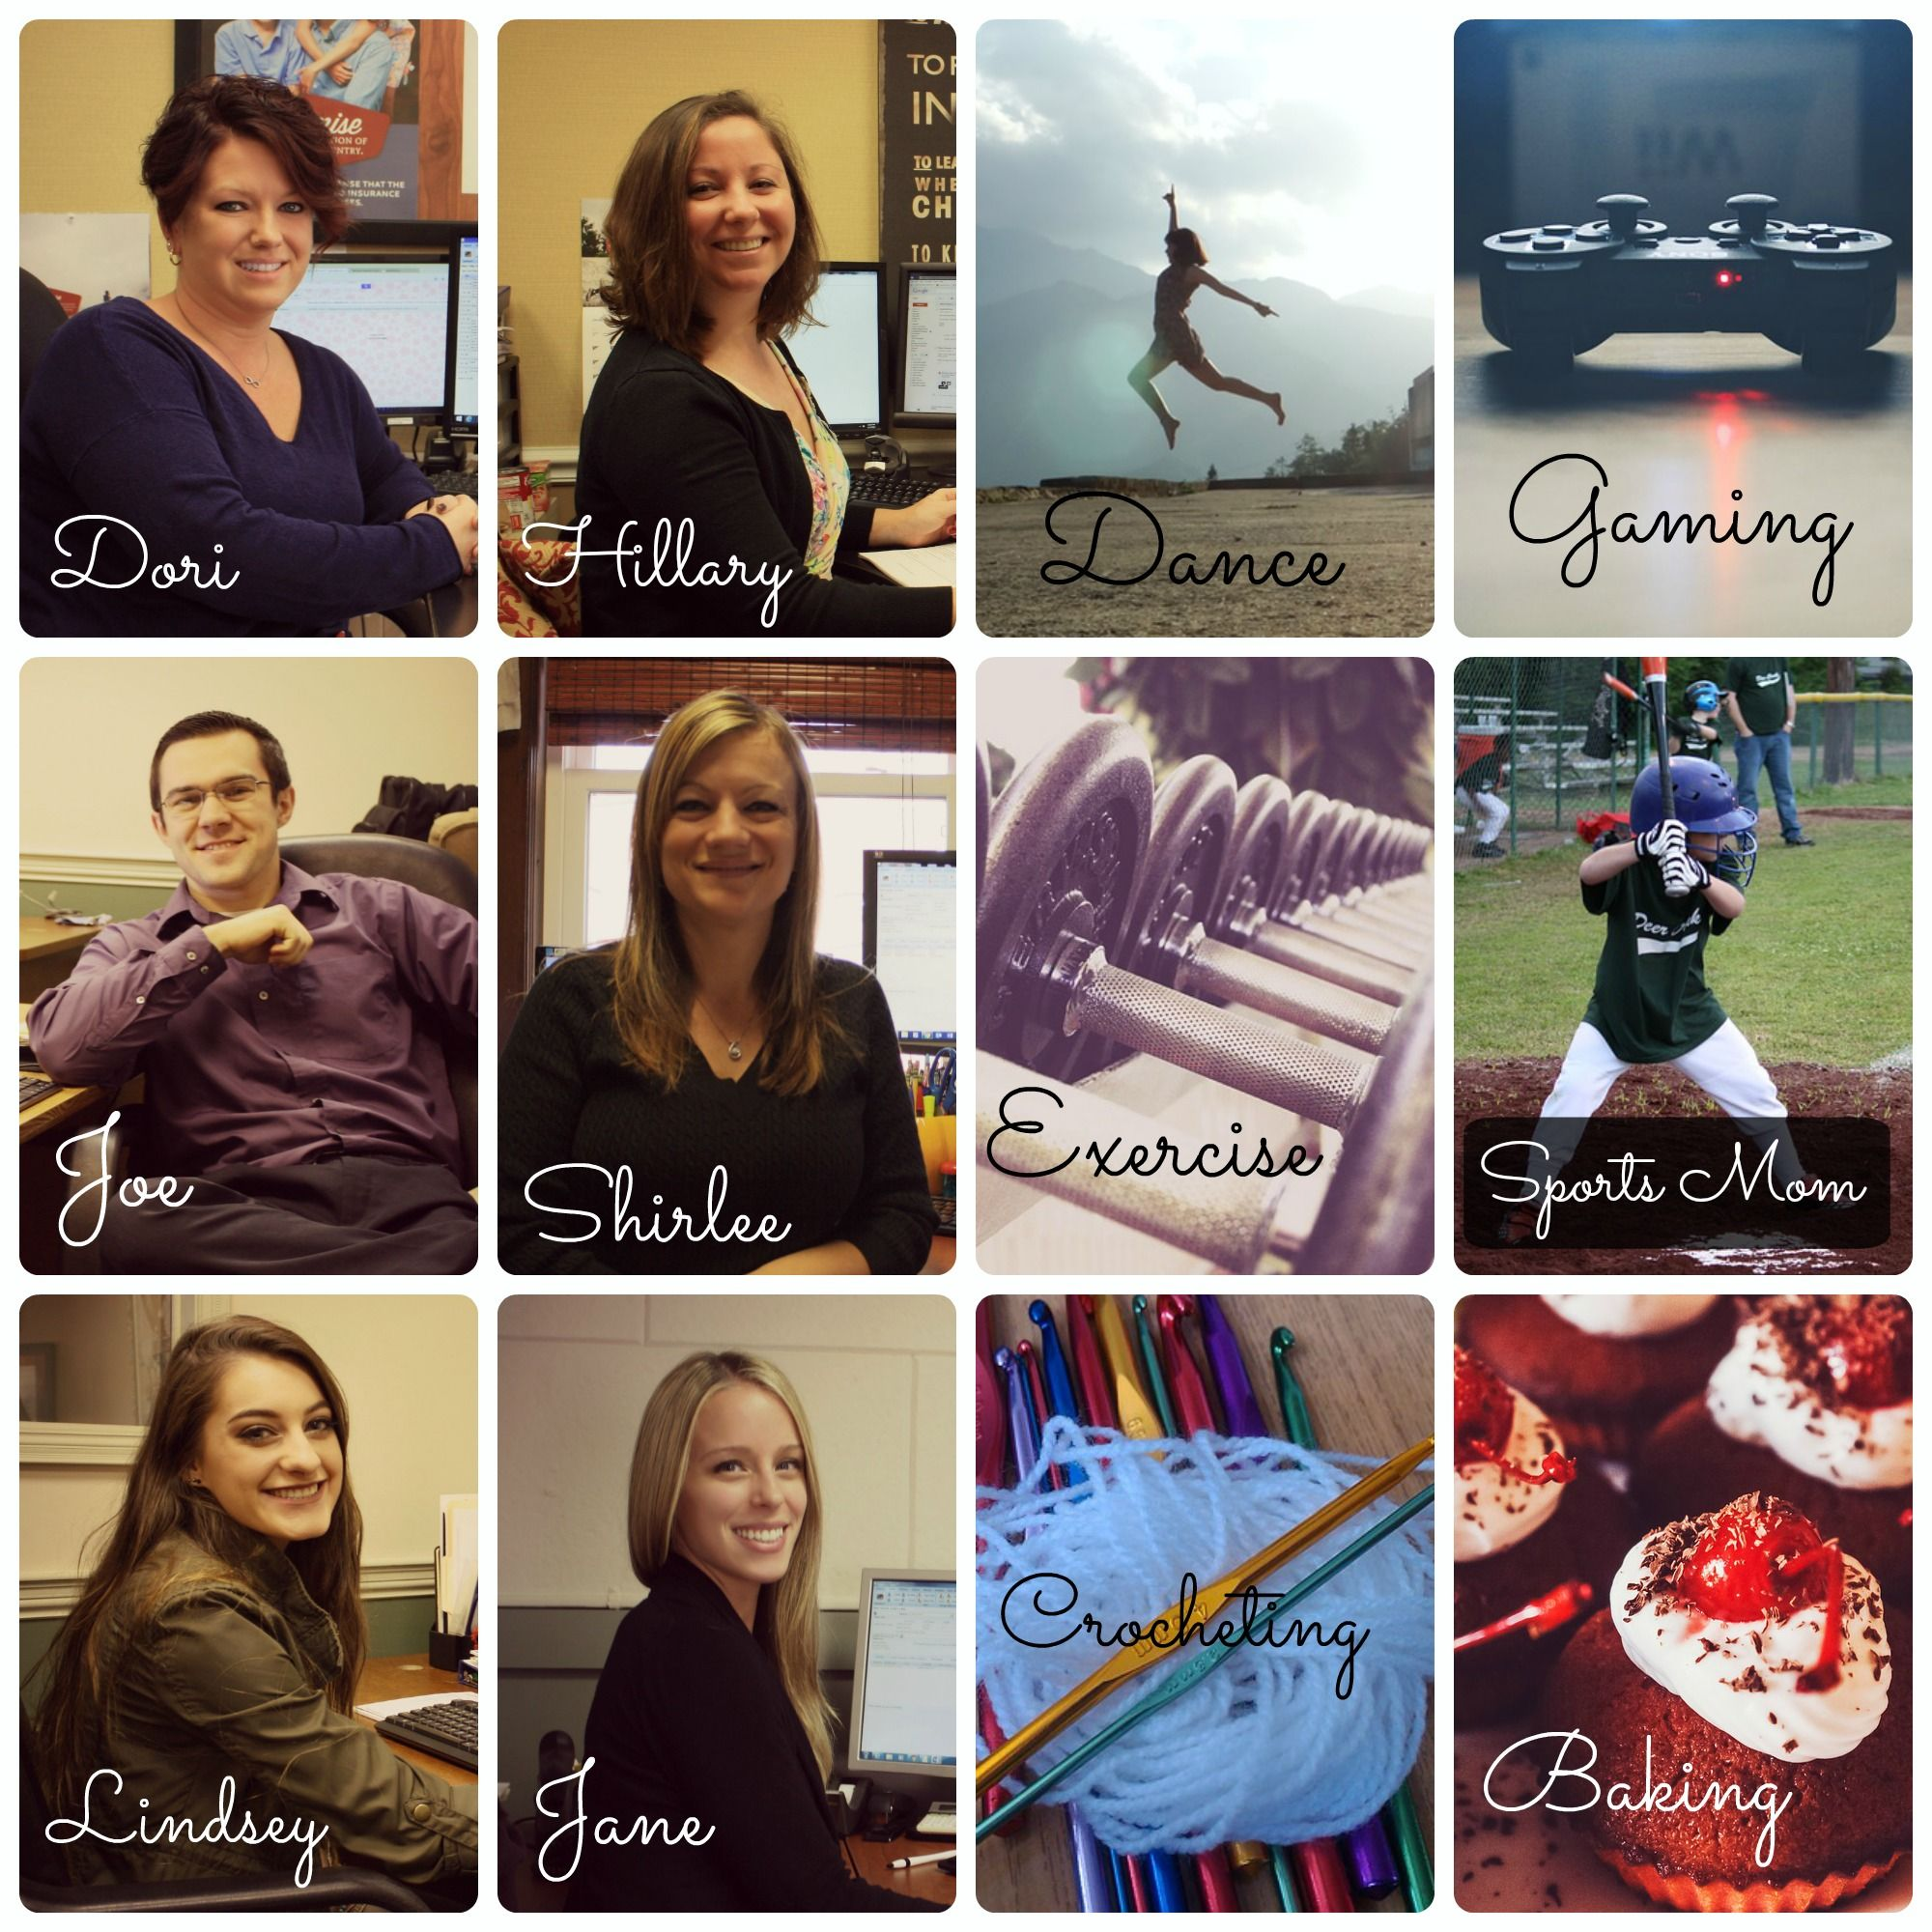 #January is #hobbymonth! Can you match our staff to their hobbies? #ParadisoInsurance @paradisoins